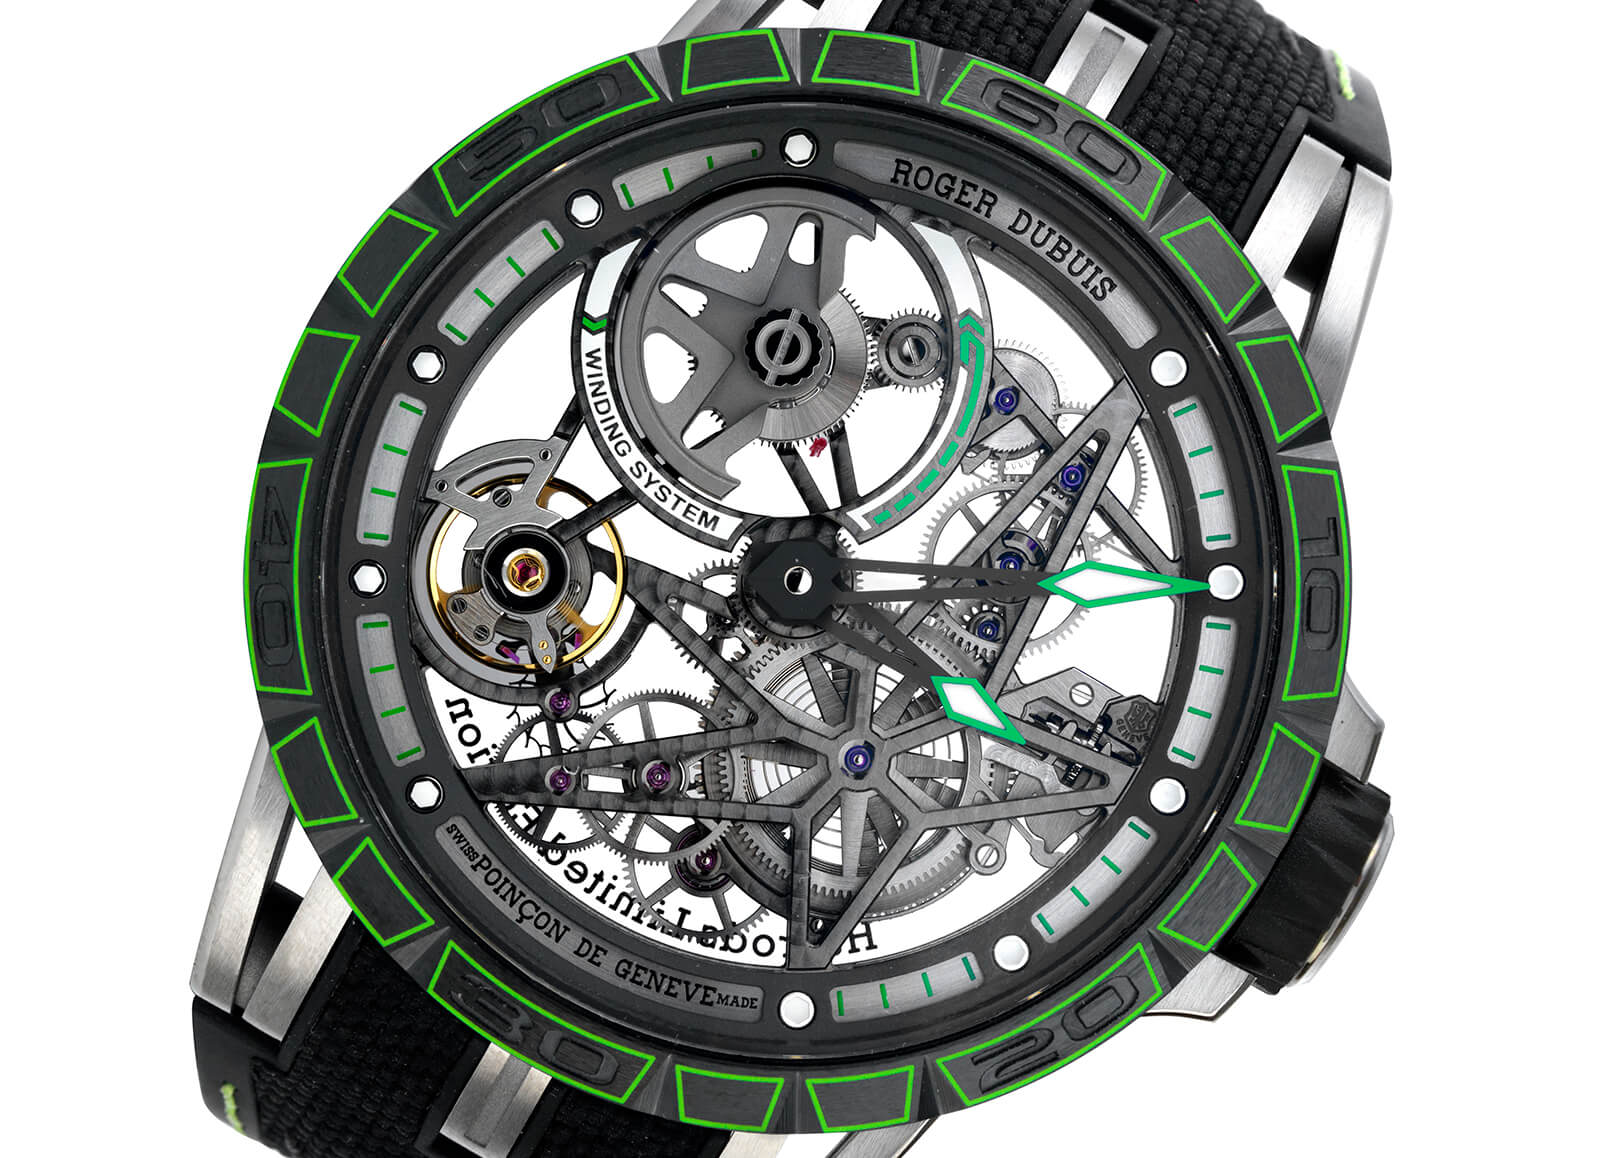 Roger Dubuis Excalibur Spider Automatic Harrods Limited Edition